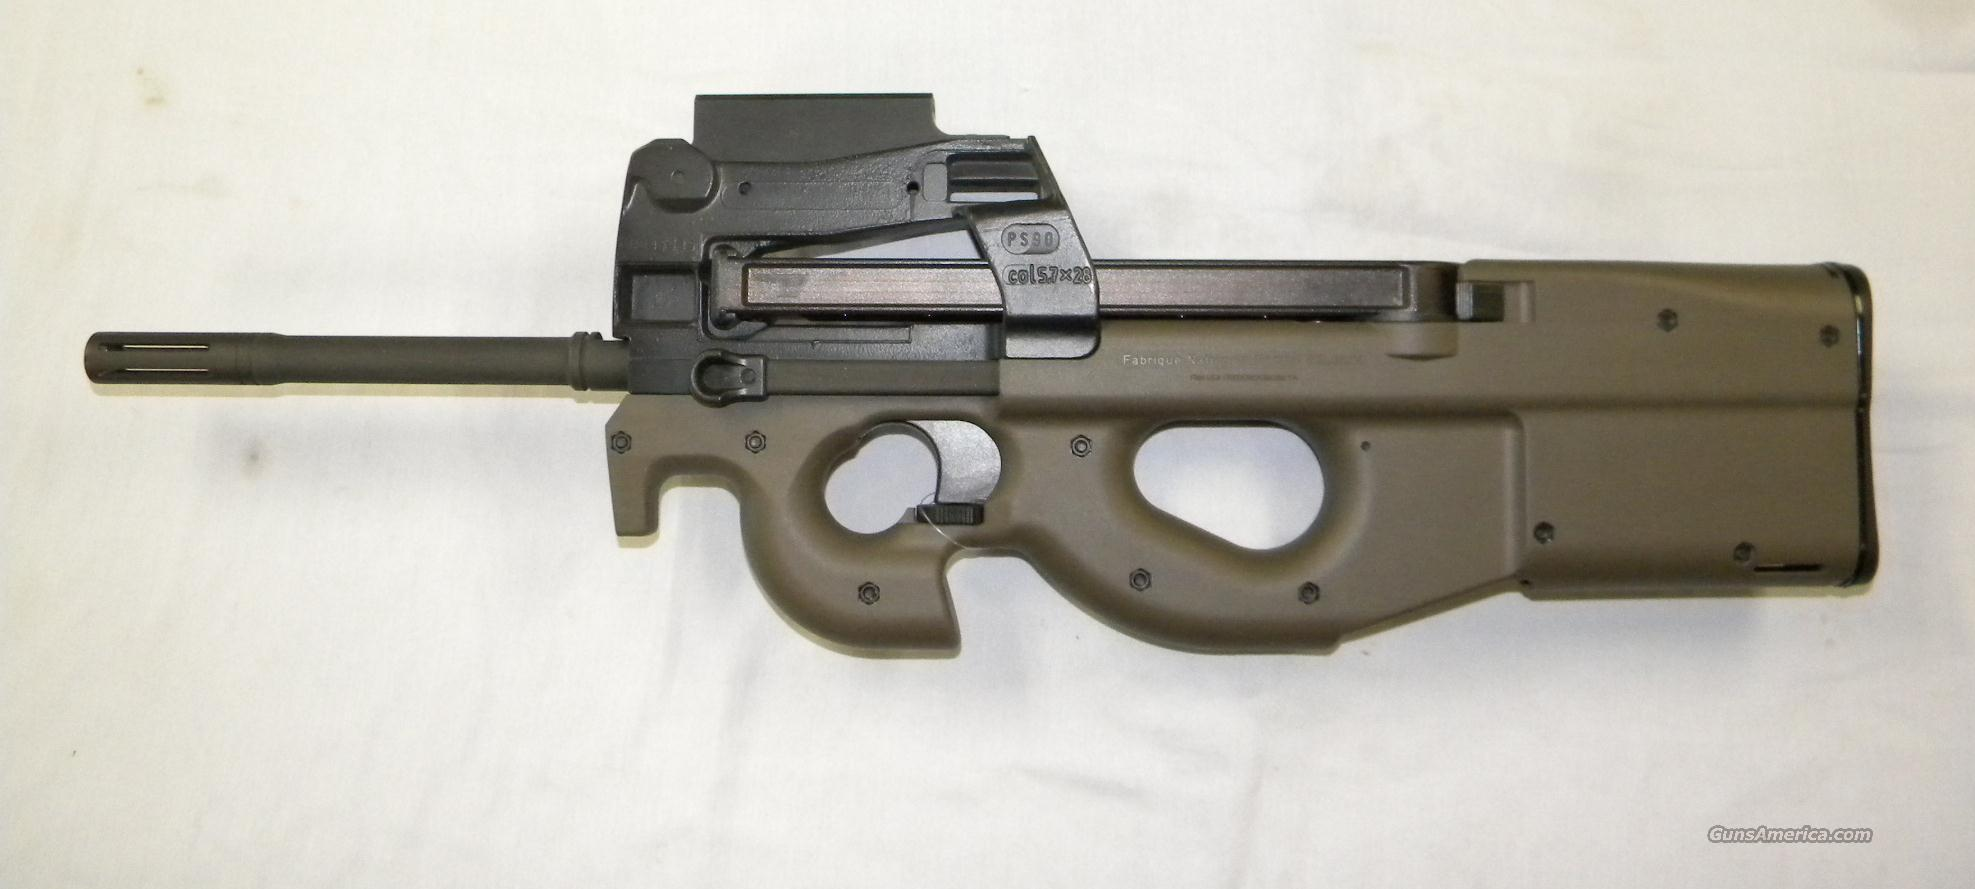 FNH PS90 with FN optics and green stock  Guns > Rifles > FNH - Fabrique Nationale (FN) Rifles > Semi-auto > PS90